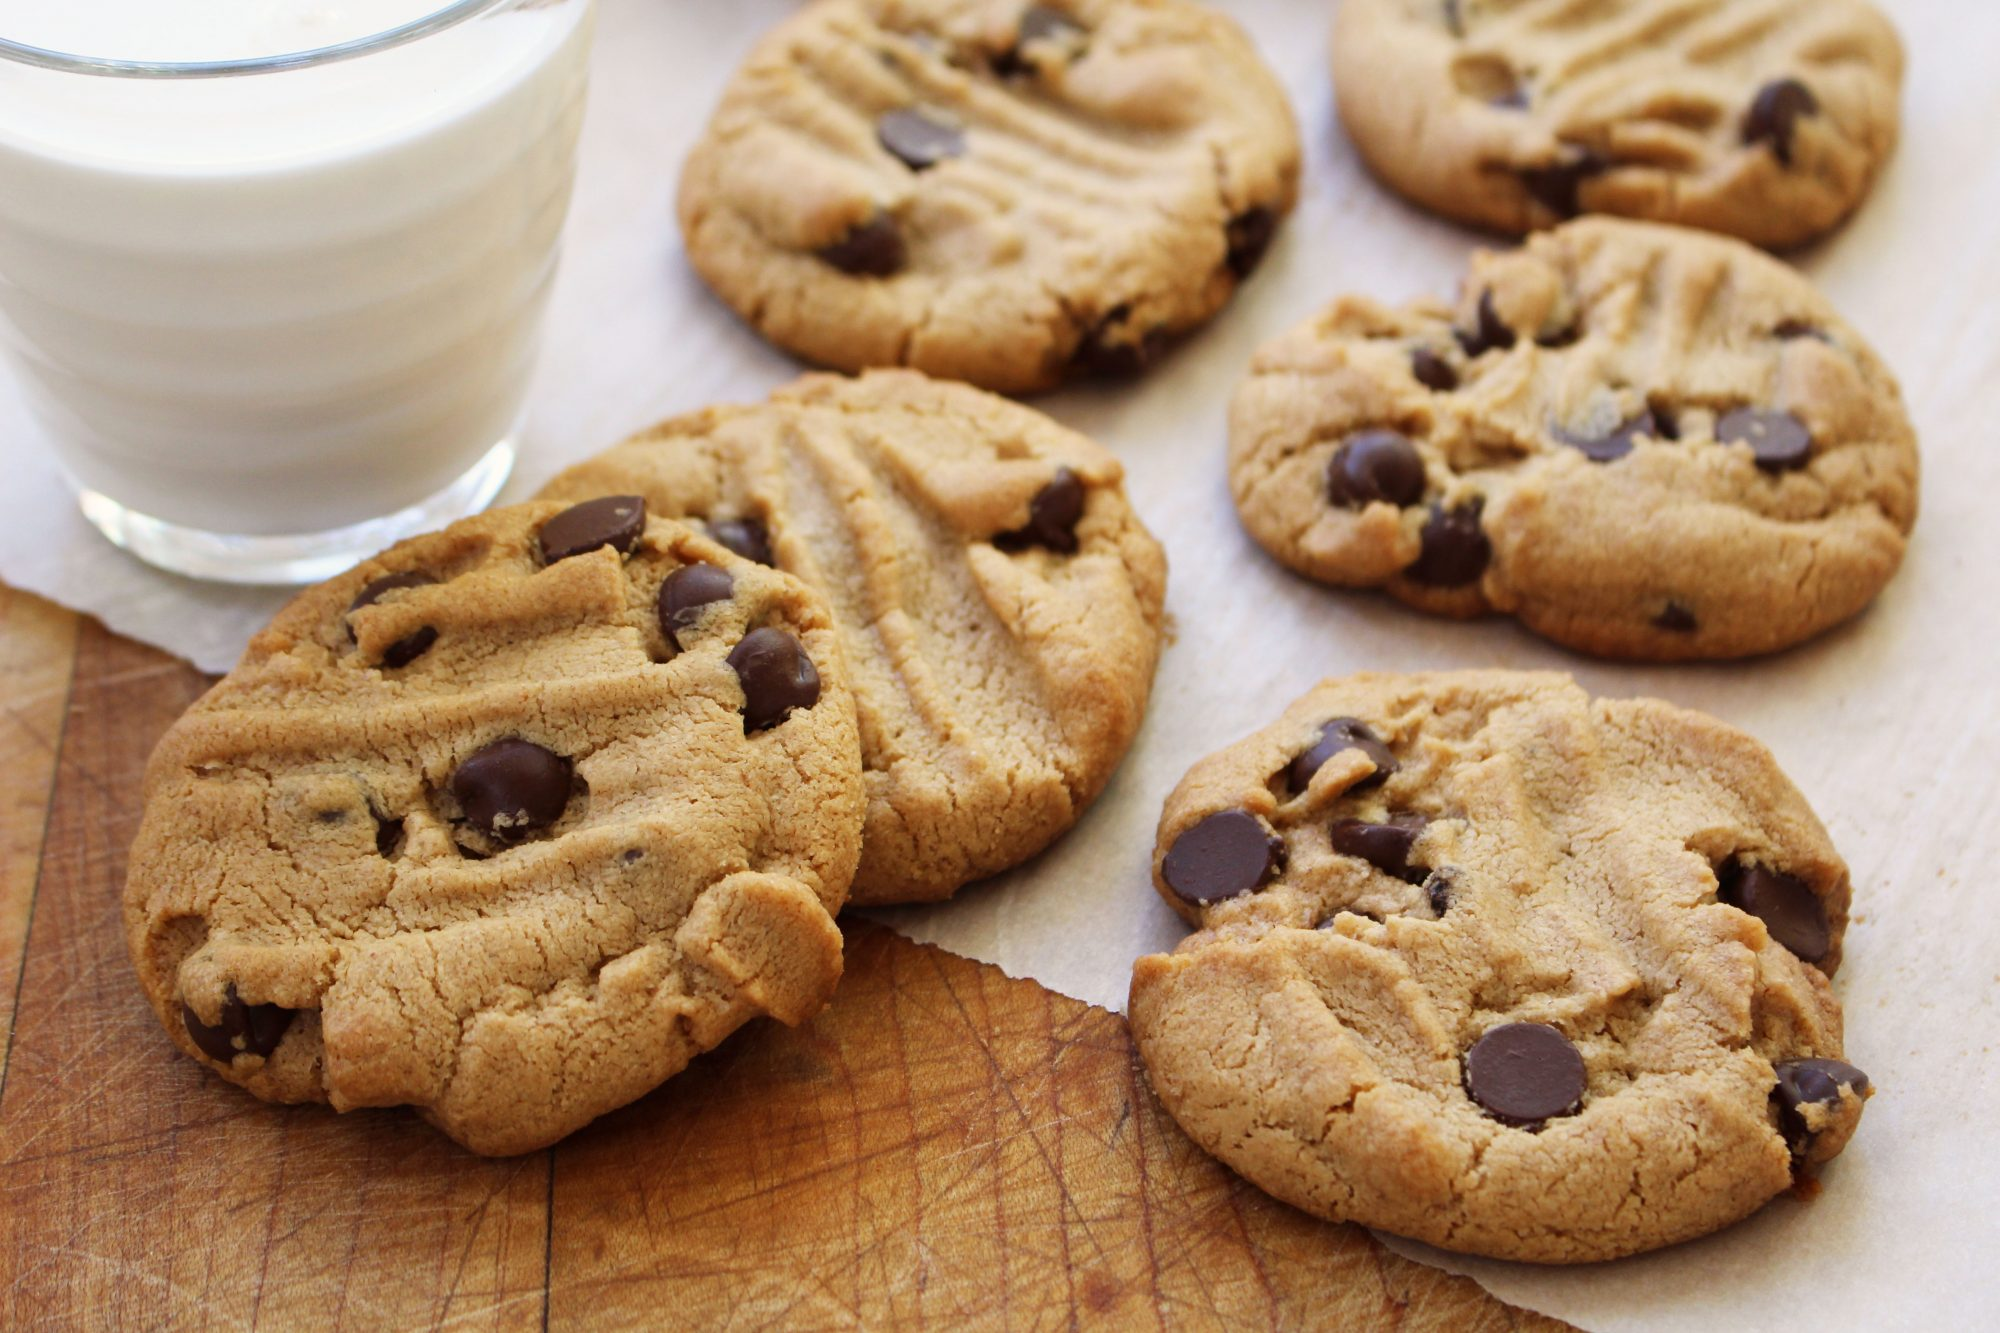 Grain free peanut butter chocolate chip cookies 3